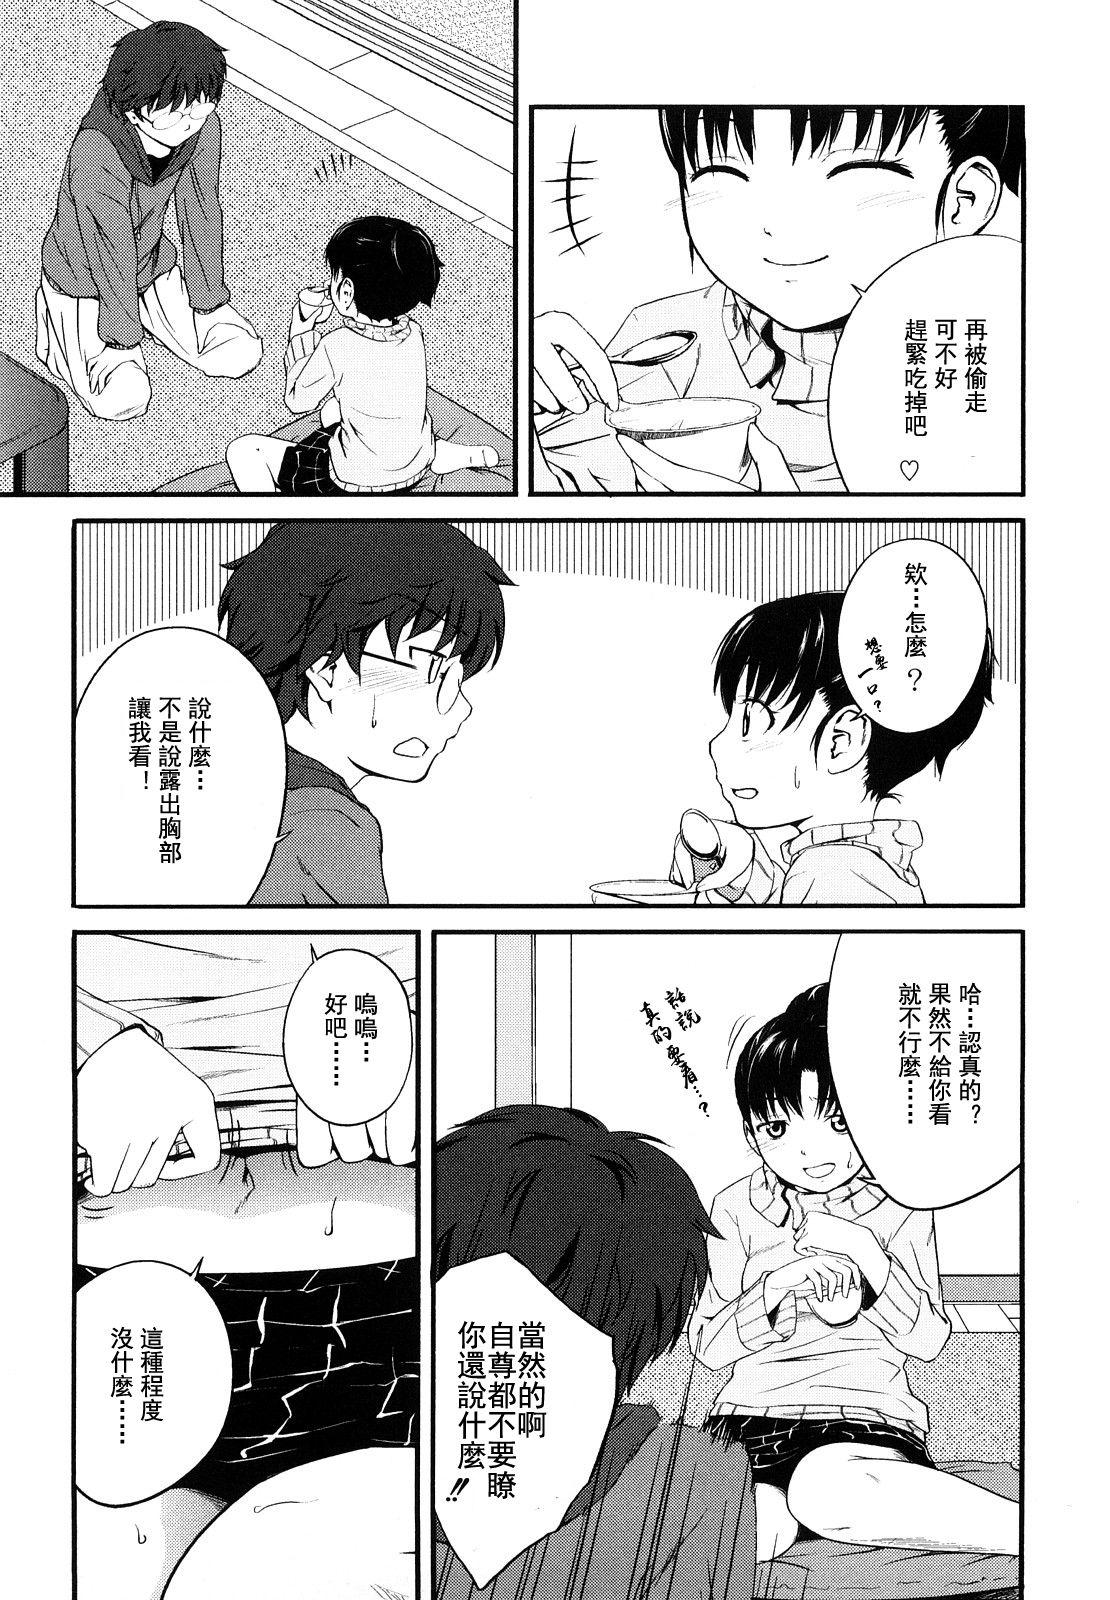 Sister Mix Ch. 1-3 53